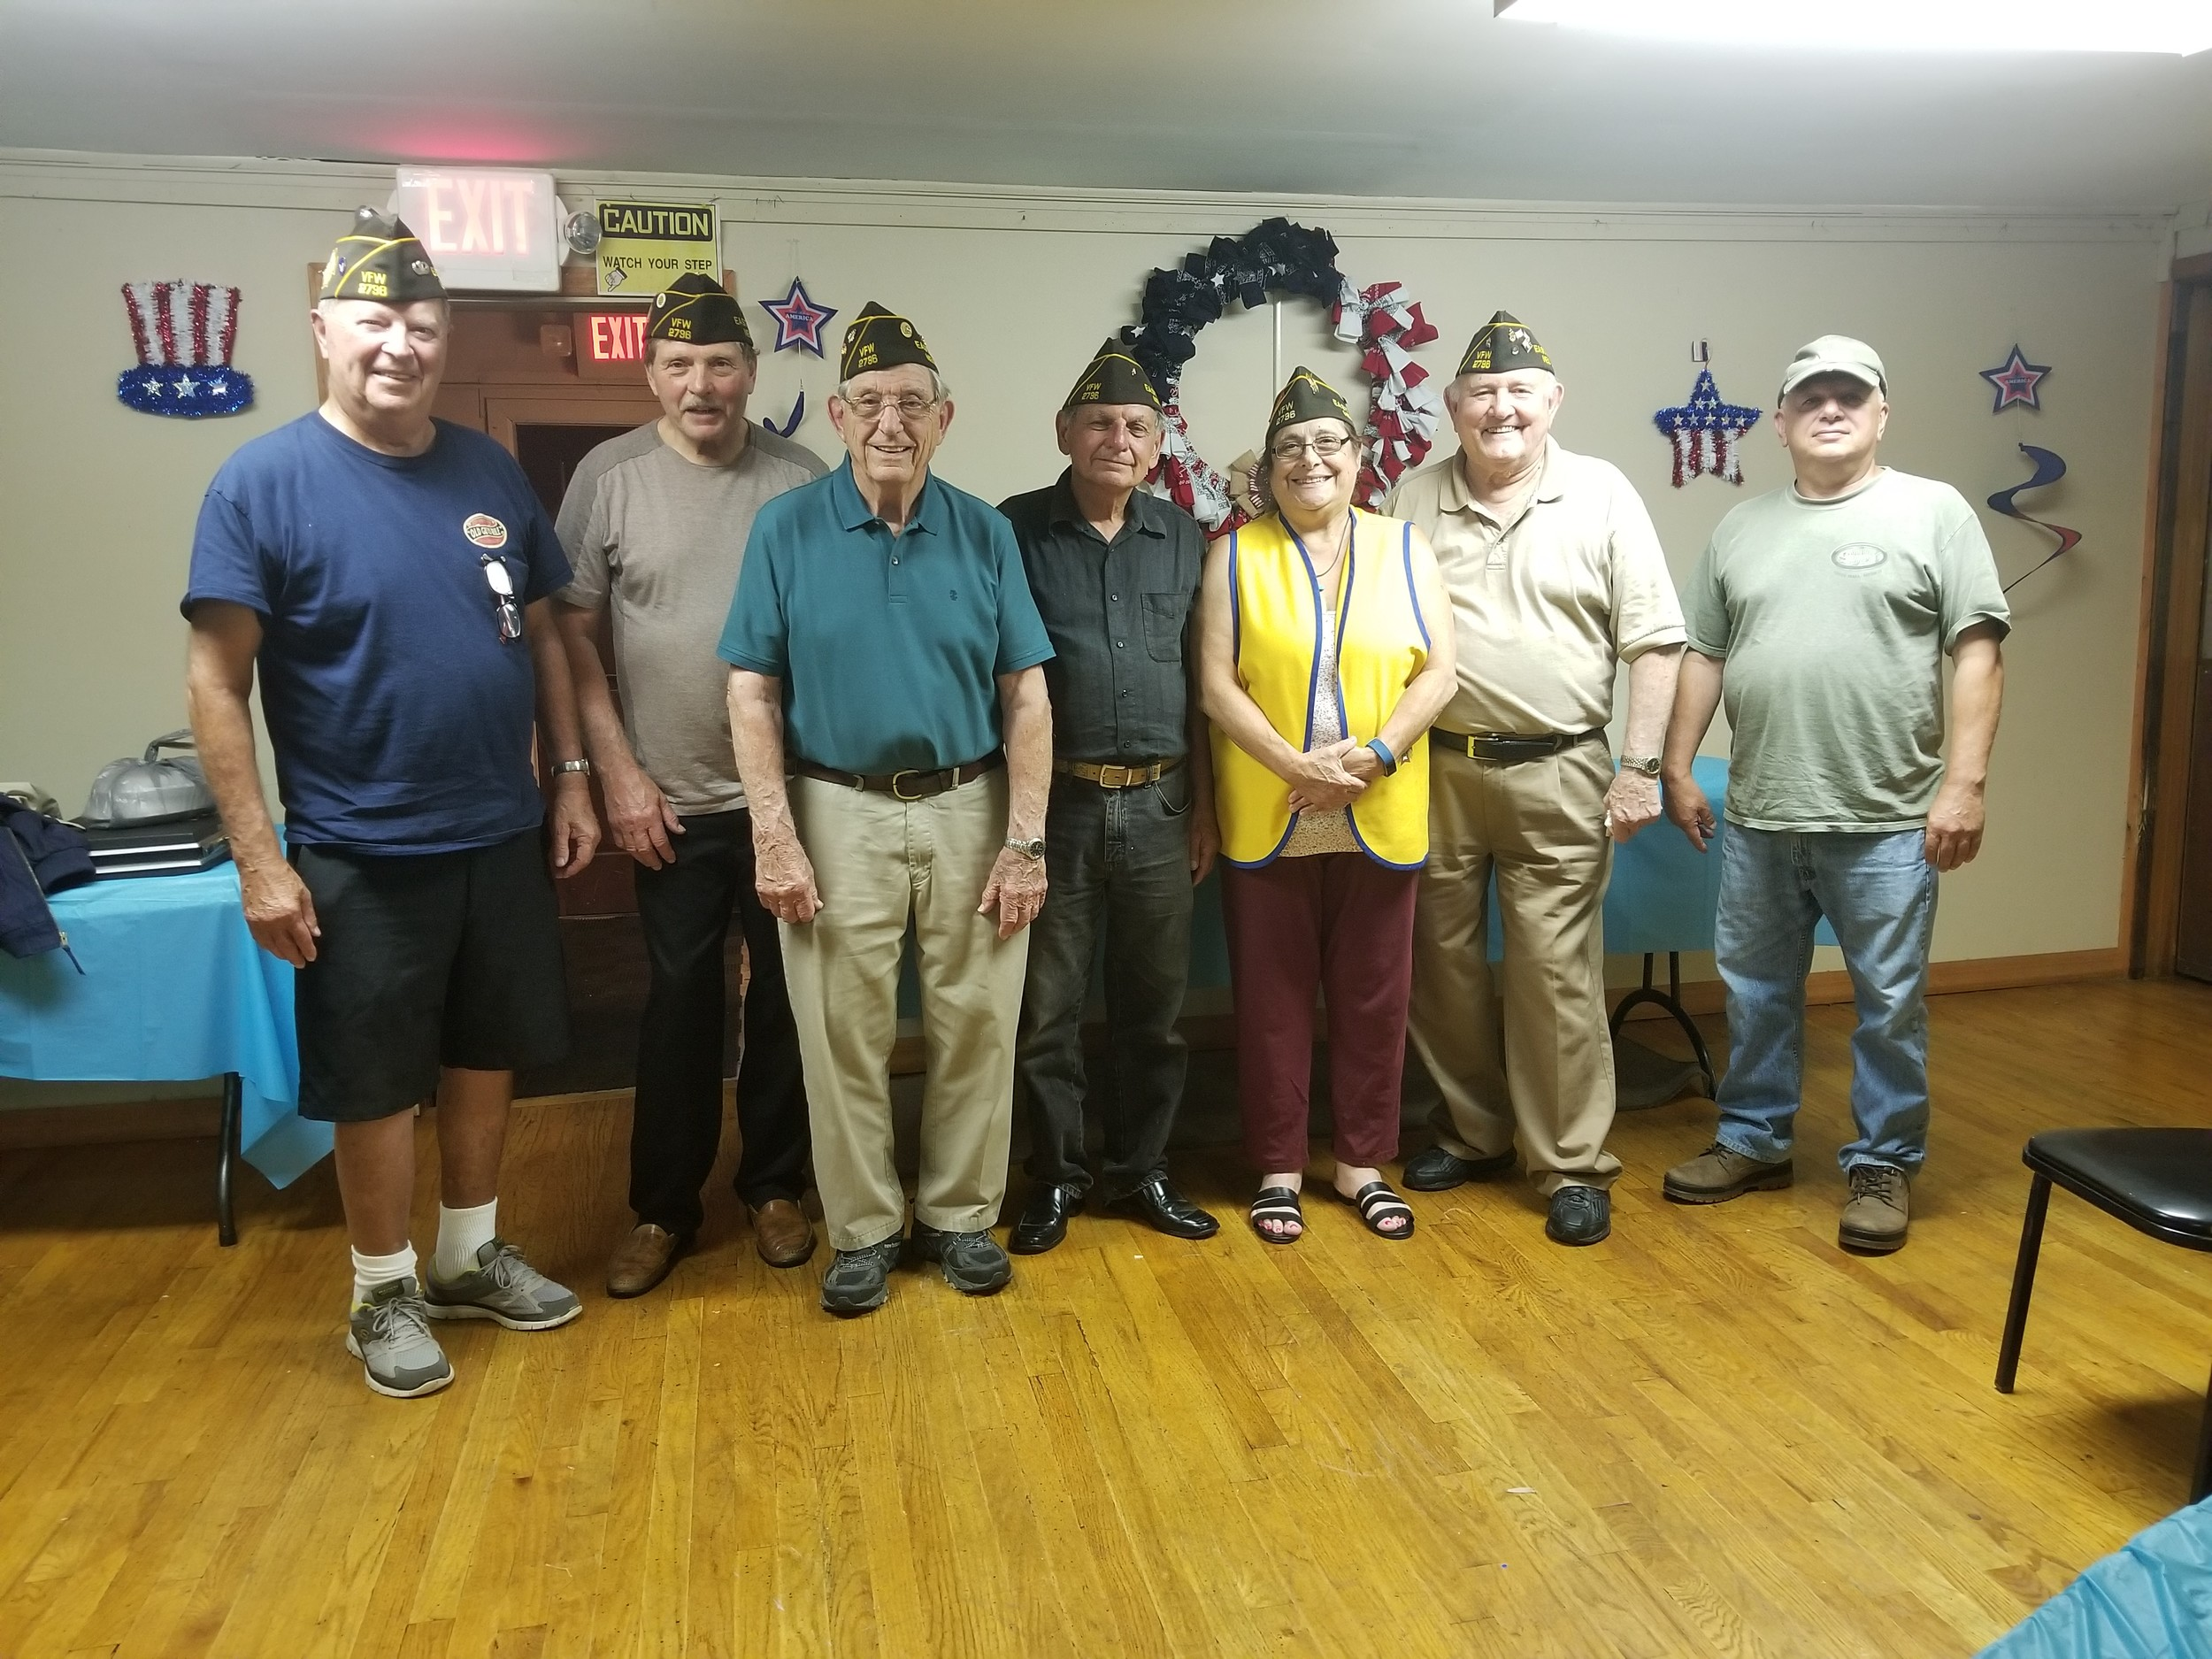 Members of the VFP Post 2736 Salvatore Del Rise, far left, Bill Lattarulo, John Mallico, Frank Salamino, Stephanie Rossetti, and Andy Phortsch welcomed new member Richard Barelli, far right.